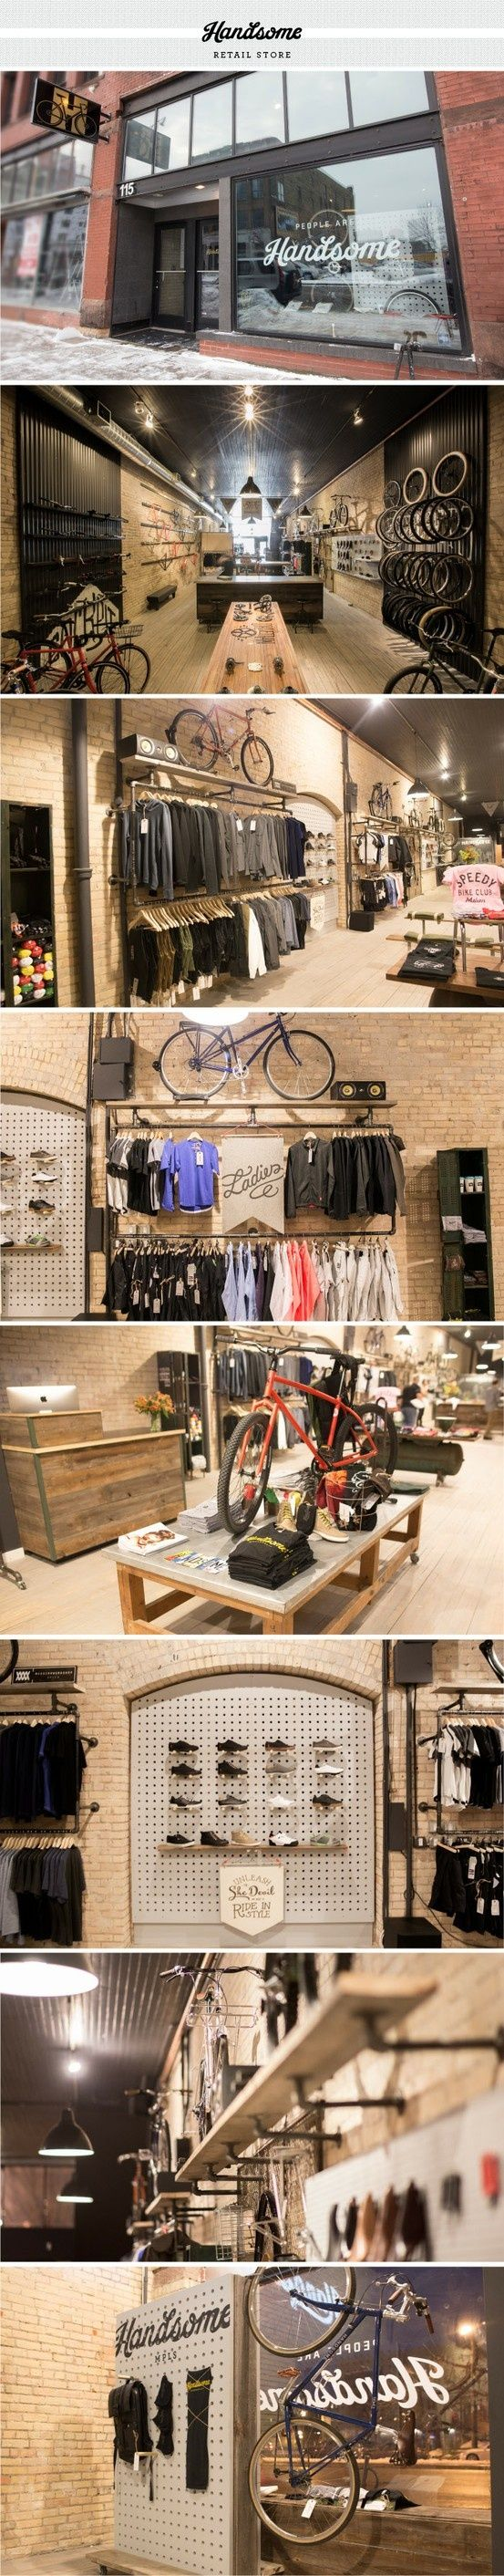 Handsome cycles retail store designed by joe anderson meenal patel and marina groh